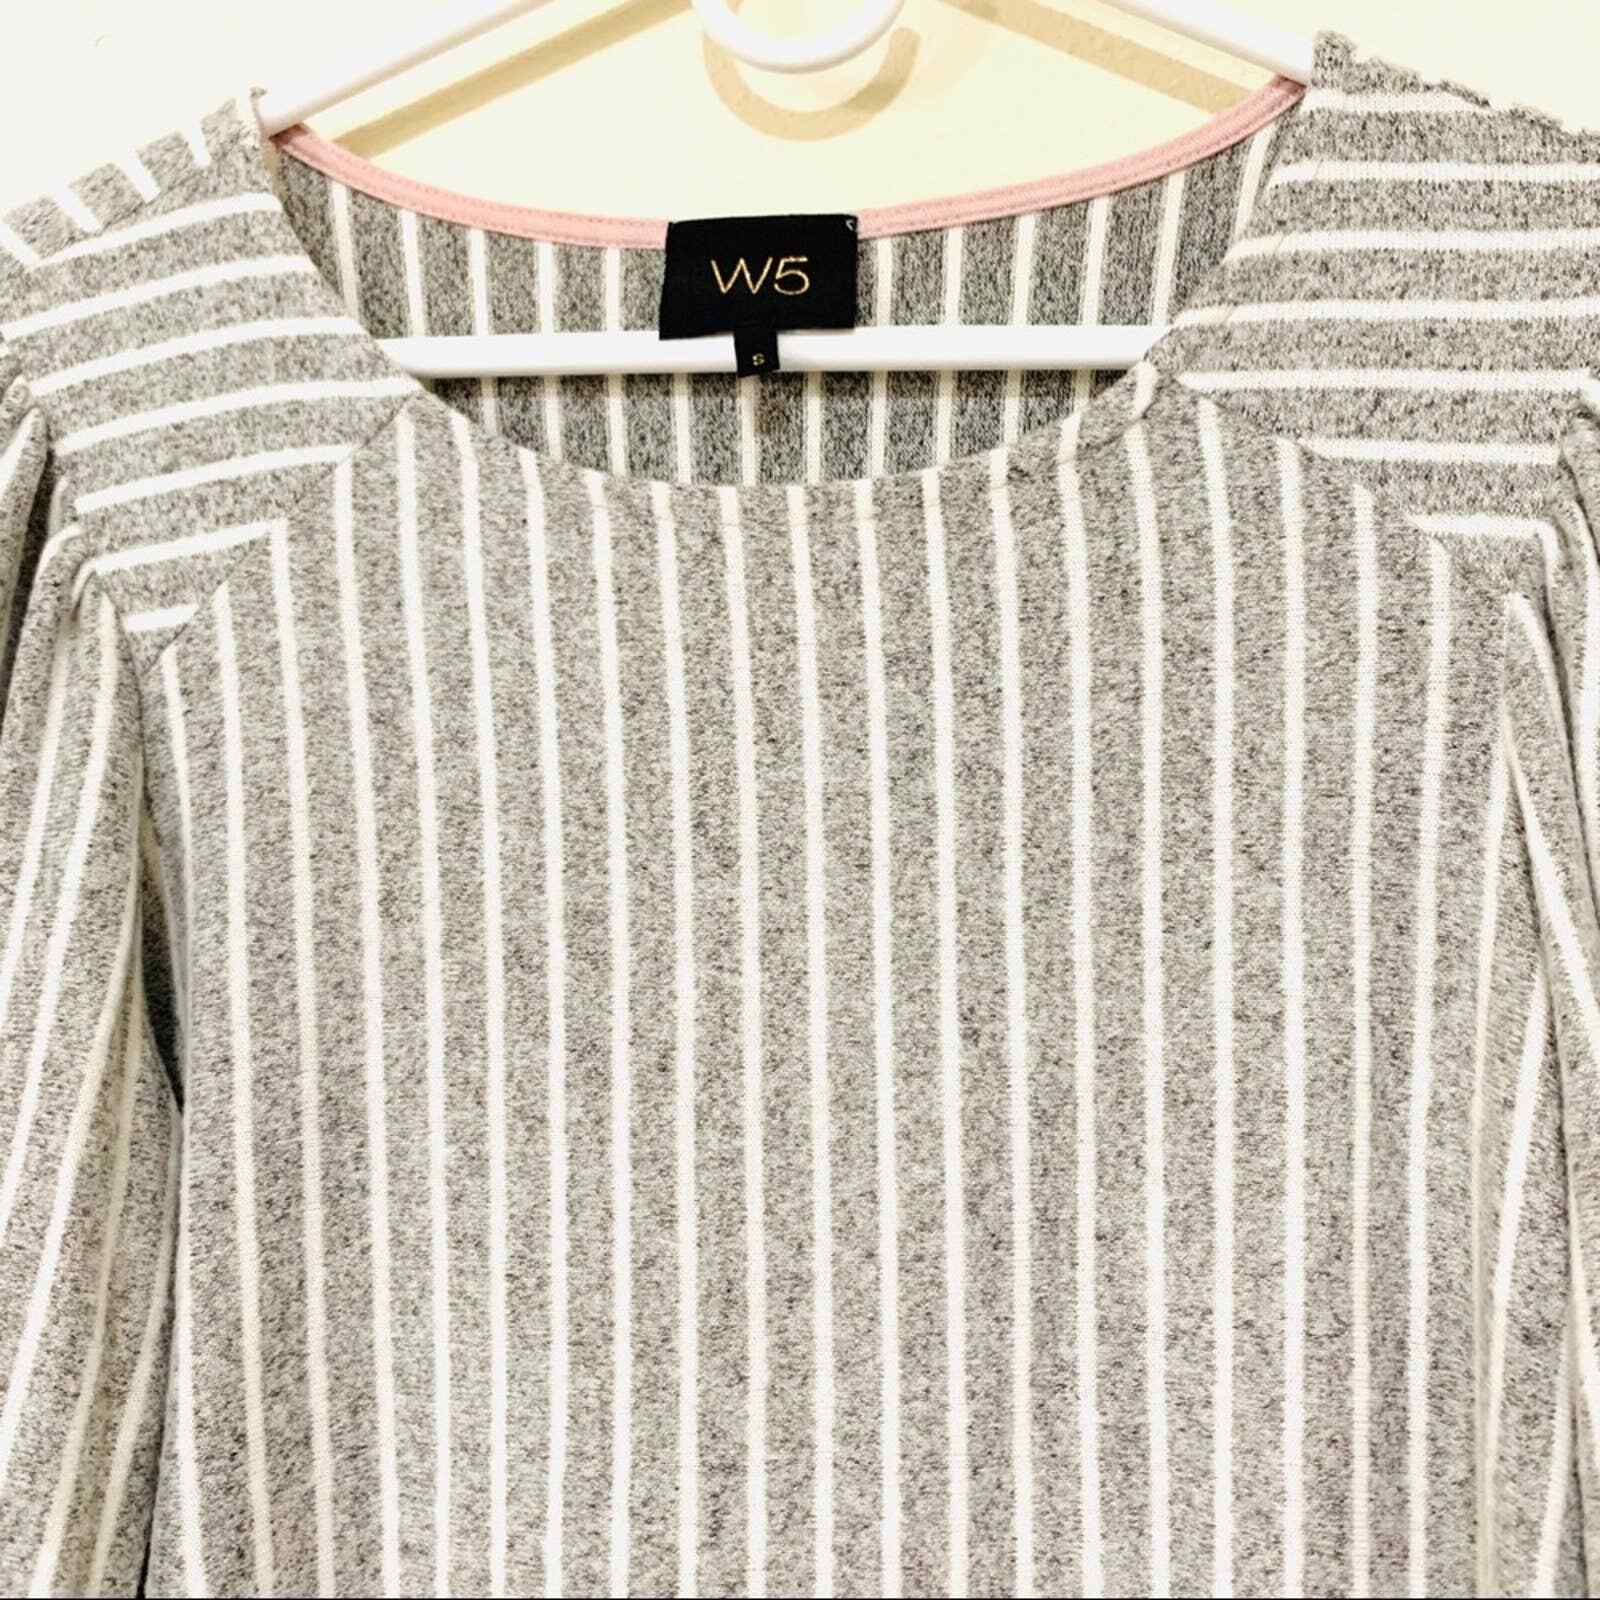 ANTHROPOLOGIE W5 striped puffed shoulder blouse s… - image 4